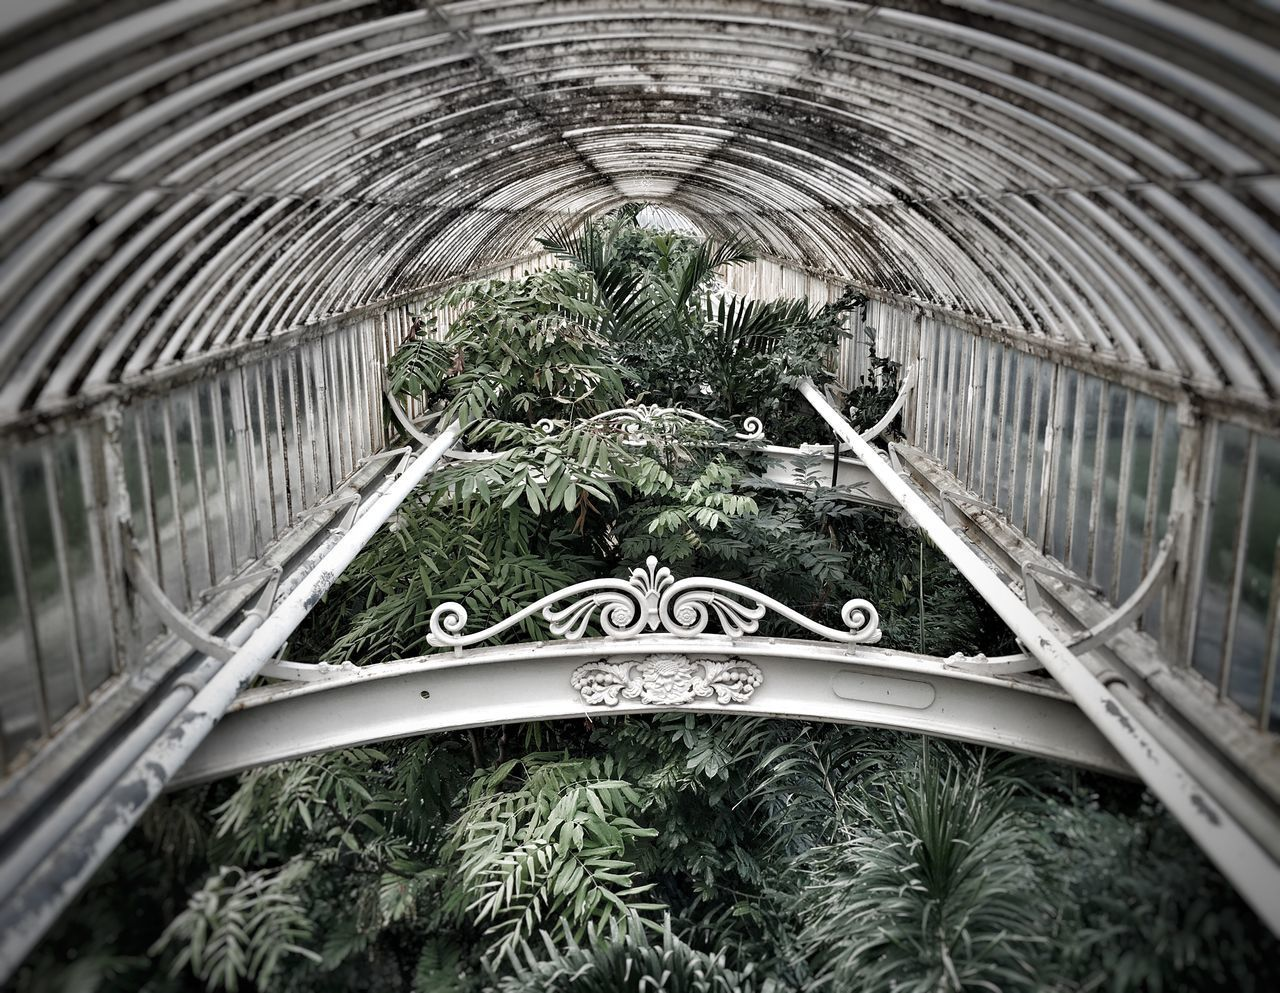 plant, growth, no people, indoors, day, nature, tree, leaf, architecture, metal, close-up, plant part, built structure, arch, green color, high angle view, selective focus, pattern, ceiling